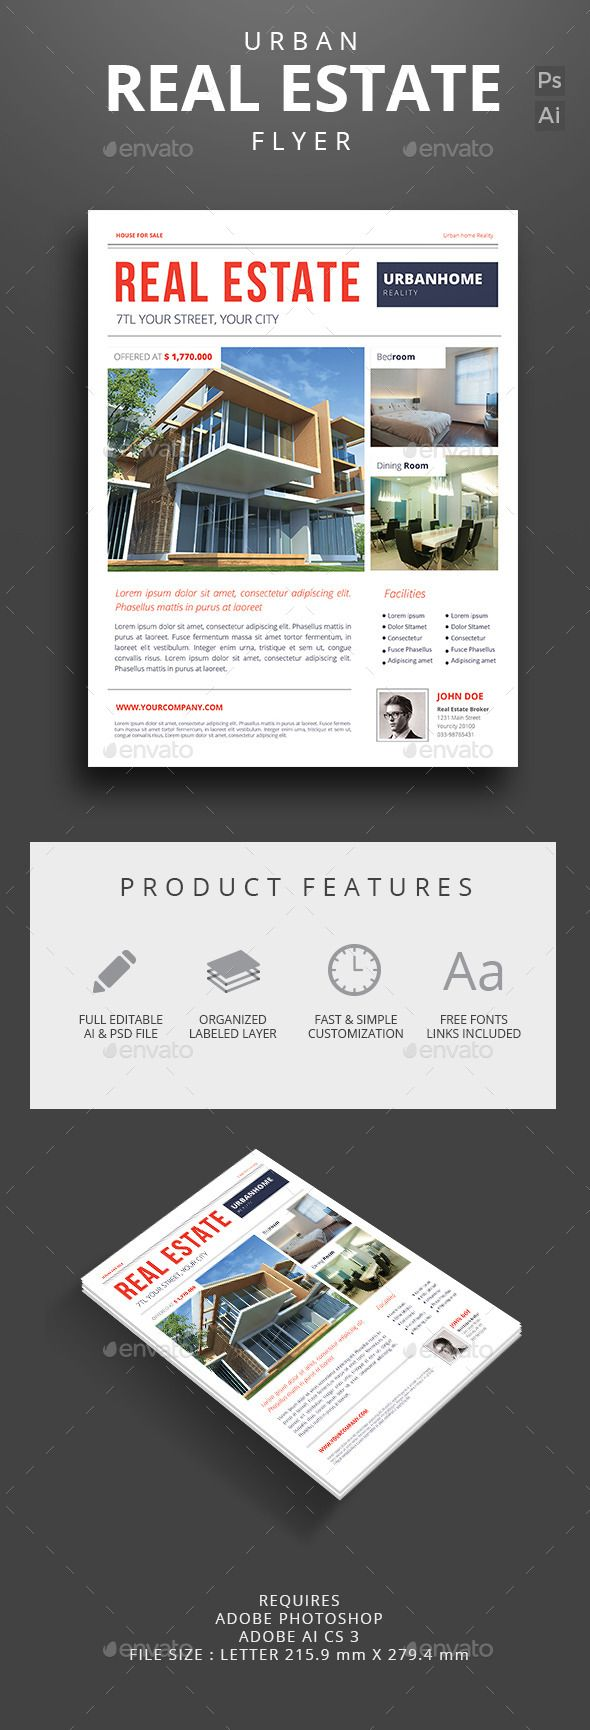 9 best m2 inspiration images on Pinterest | Business flyers ...